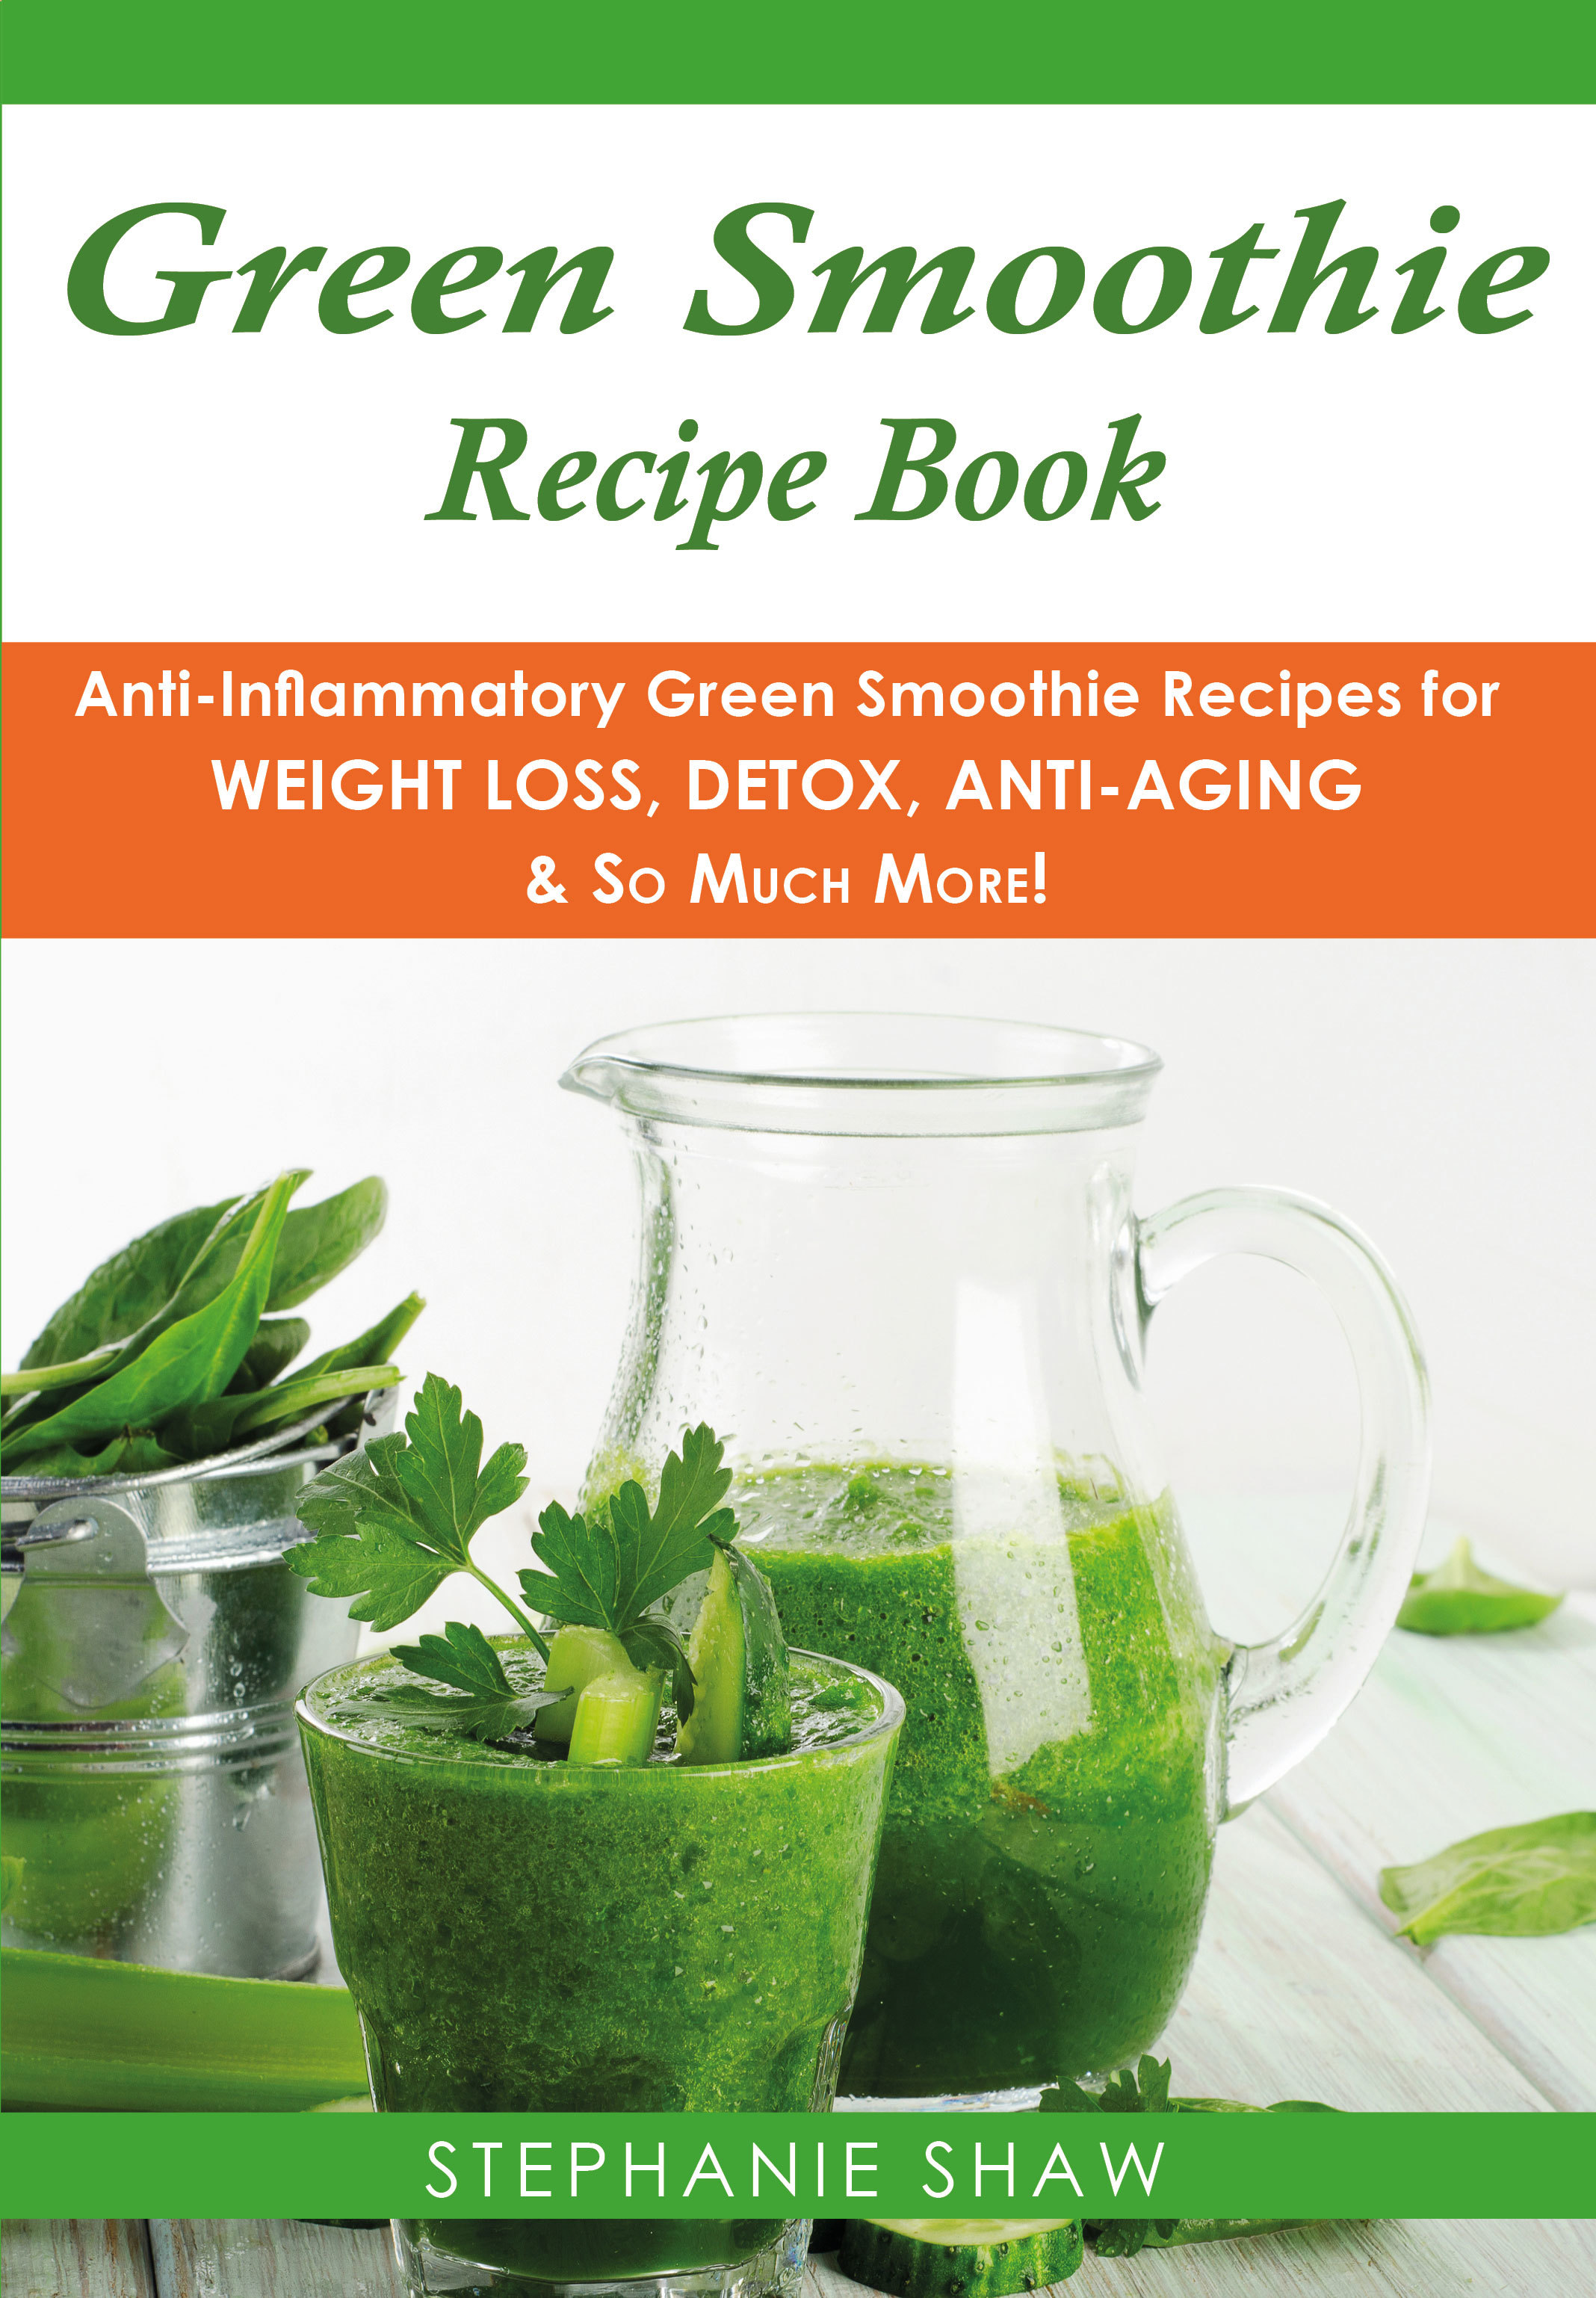 Green Smoothie Recipe Book: Anti-Inflammatory Green Smoothie Recipes for Weight Loss, Detox, Anti-Aging & So Much More!